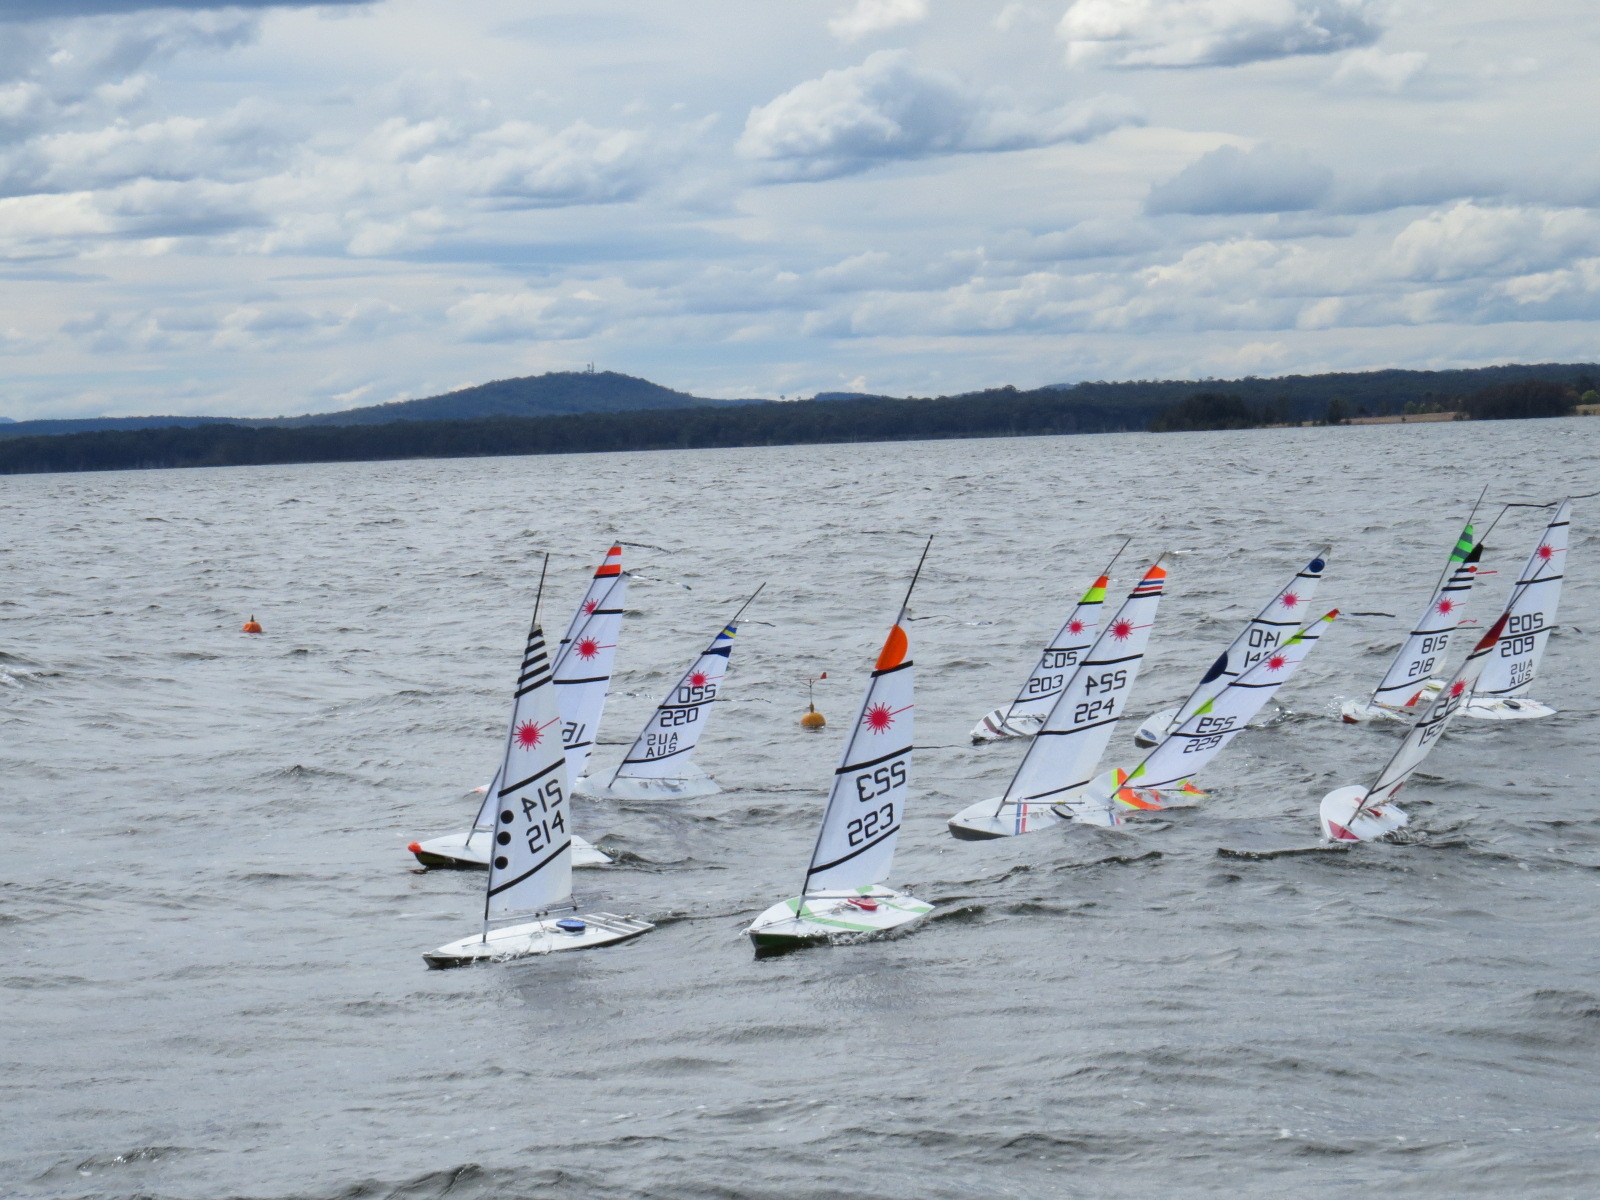 Eventful Day For The Northlakes Radio Sailing Club Laser